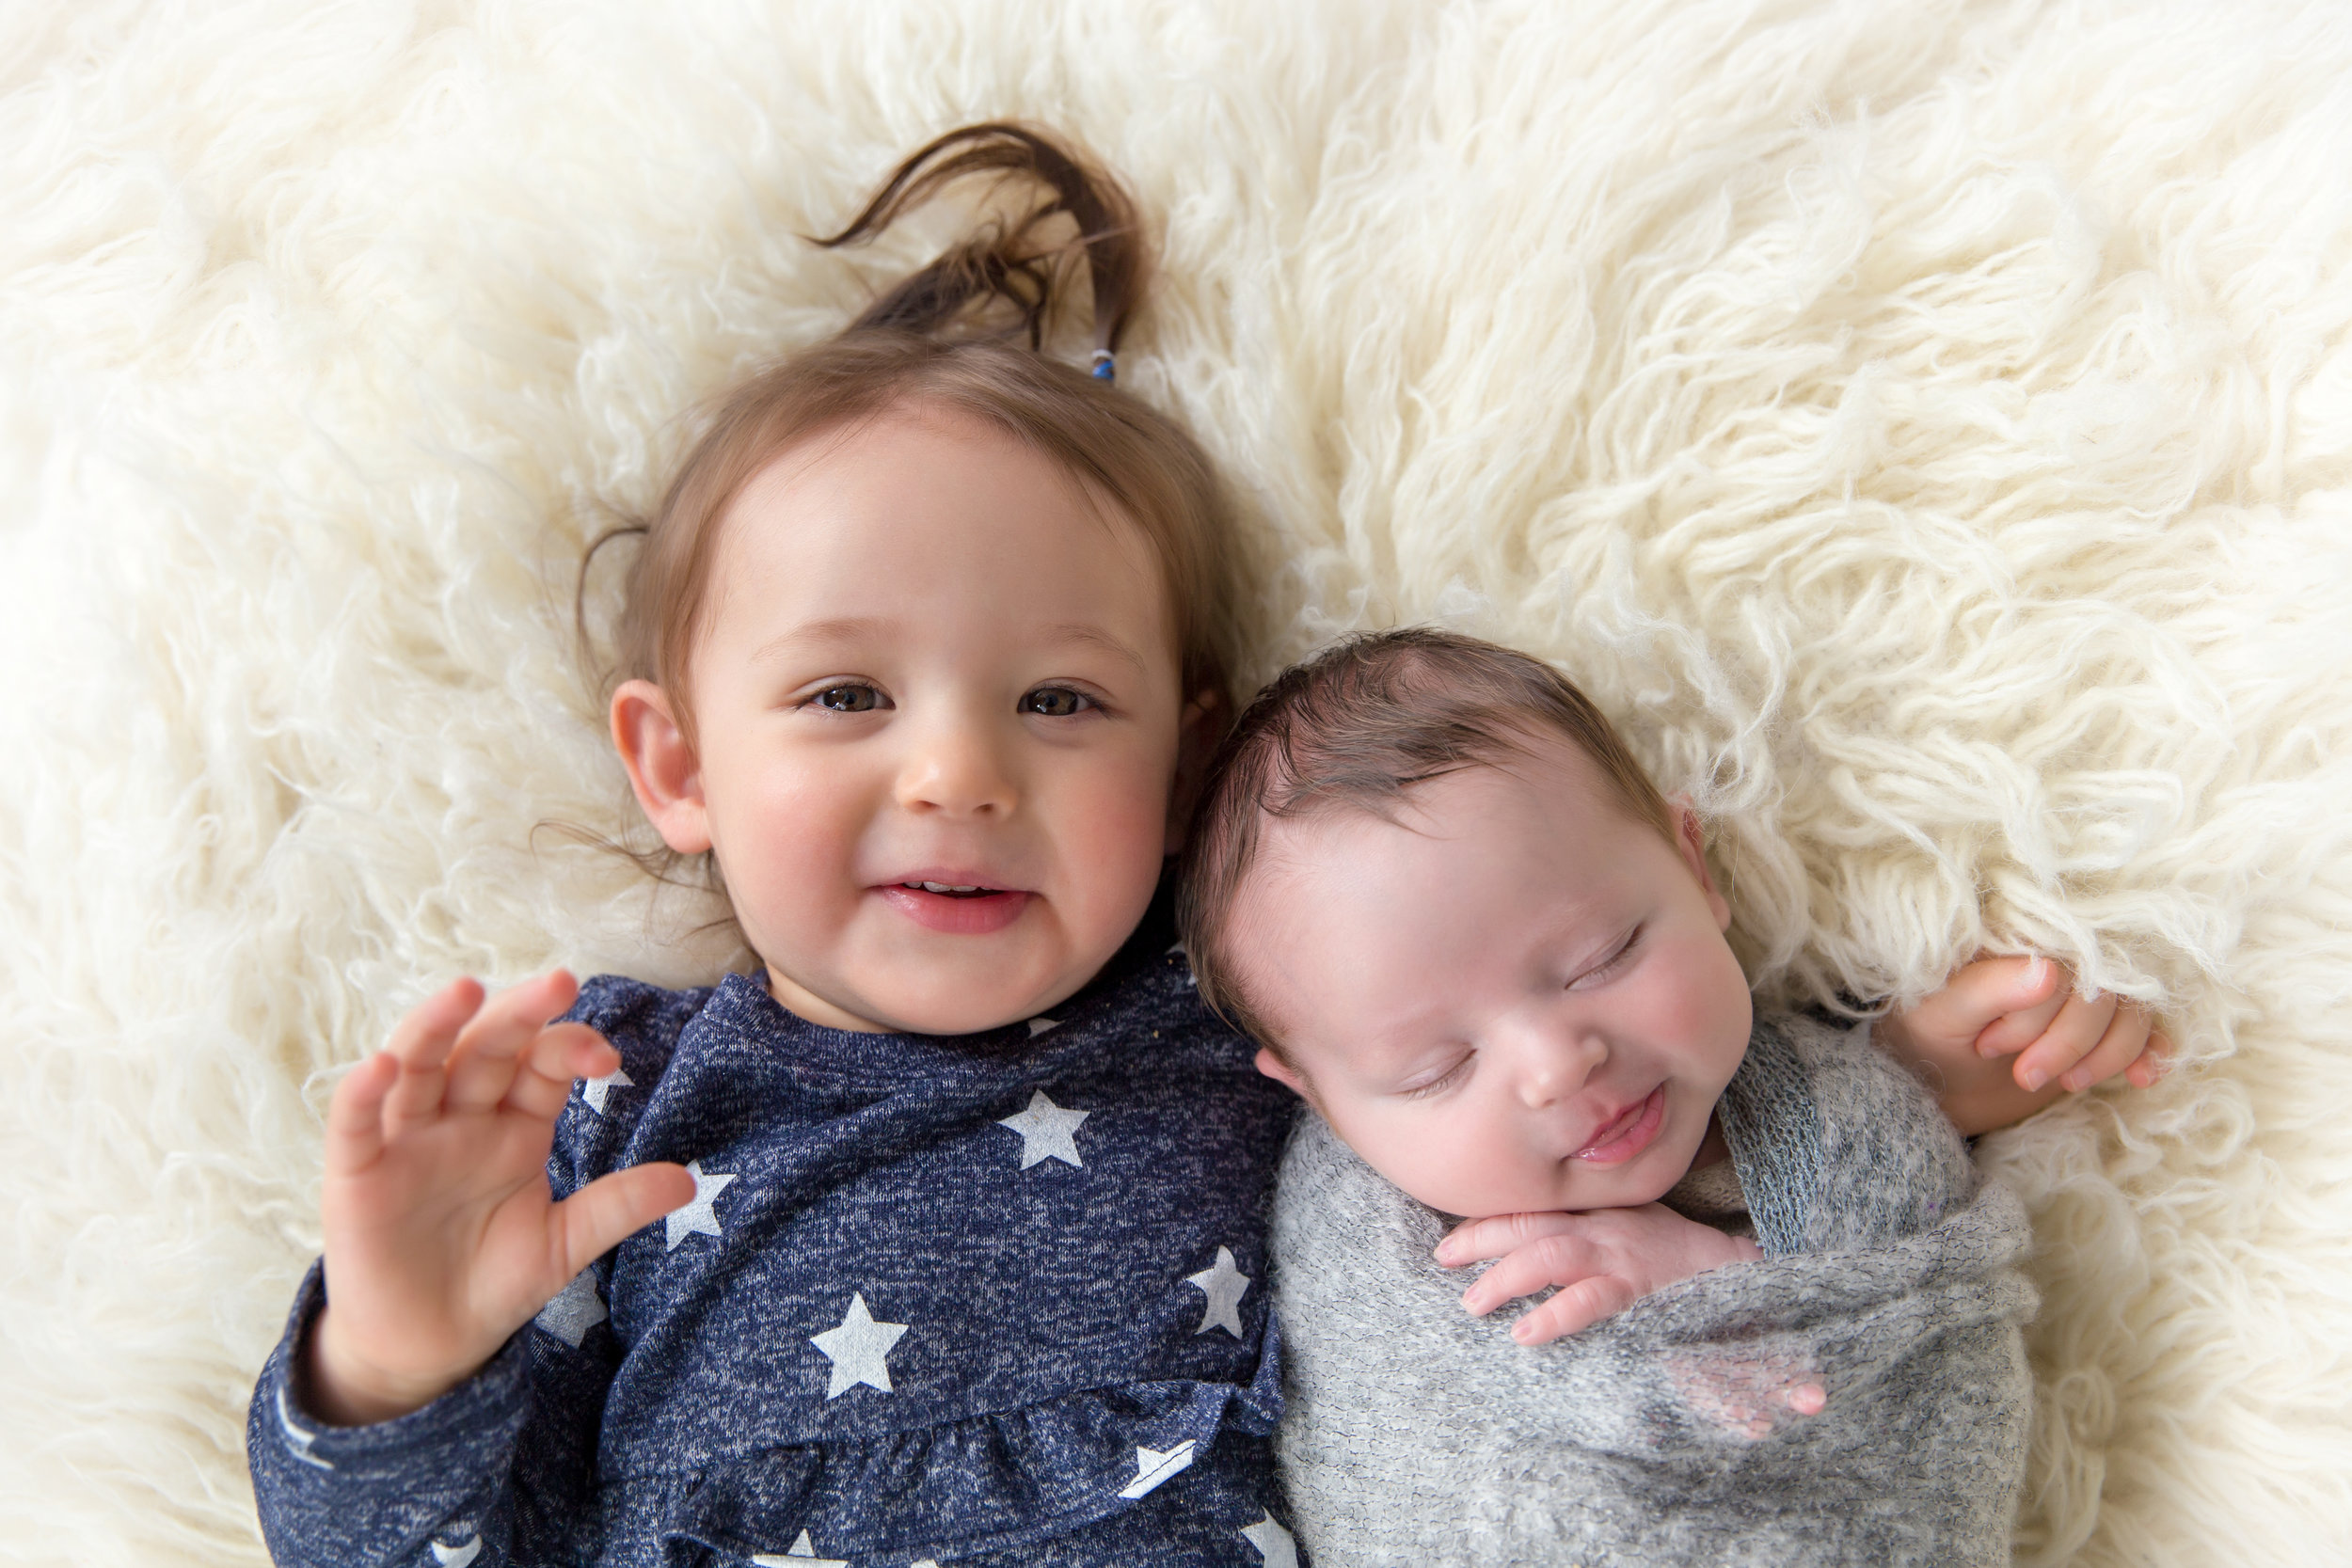 Siblings on a beanbag shot. Big sister is hugging her newborn baby brother. Calgary newborn photographer. Milashka Photography